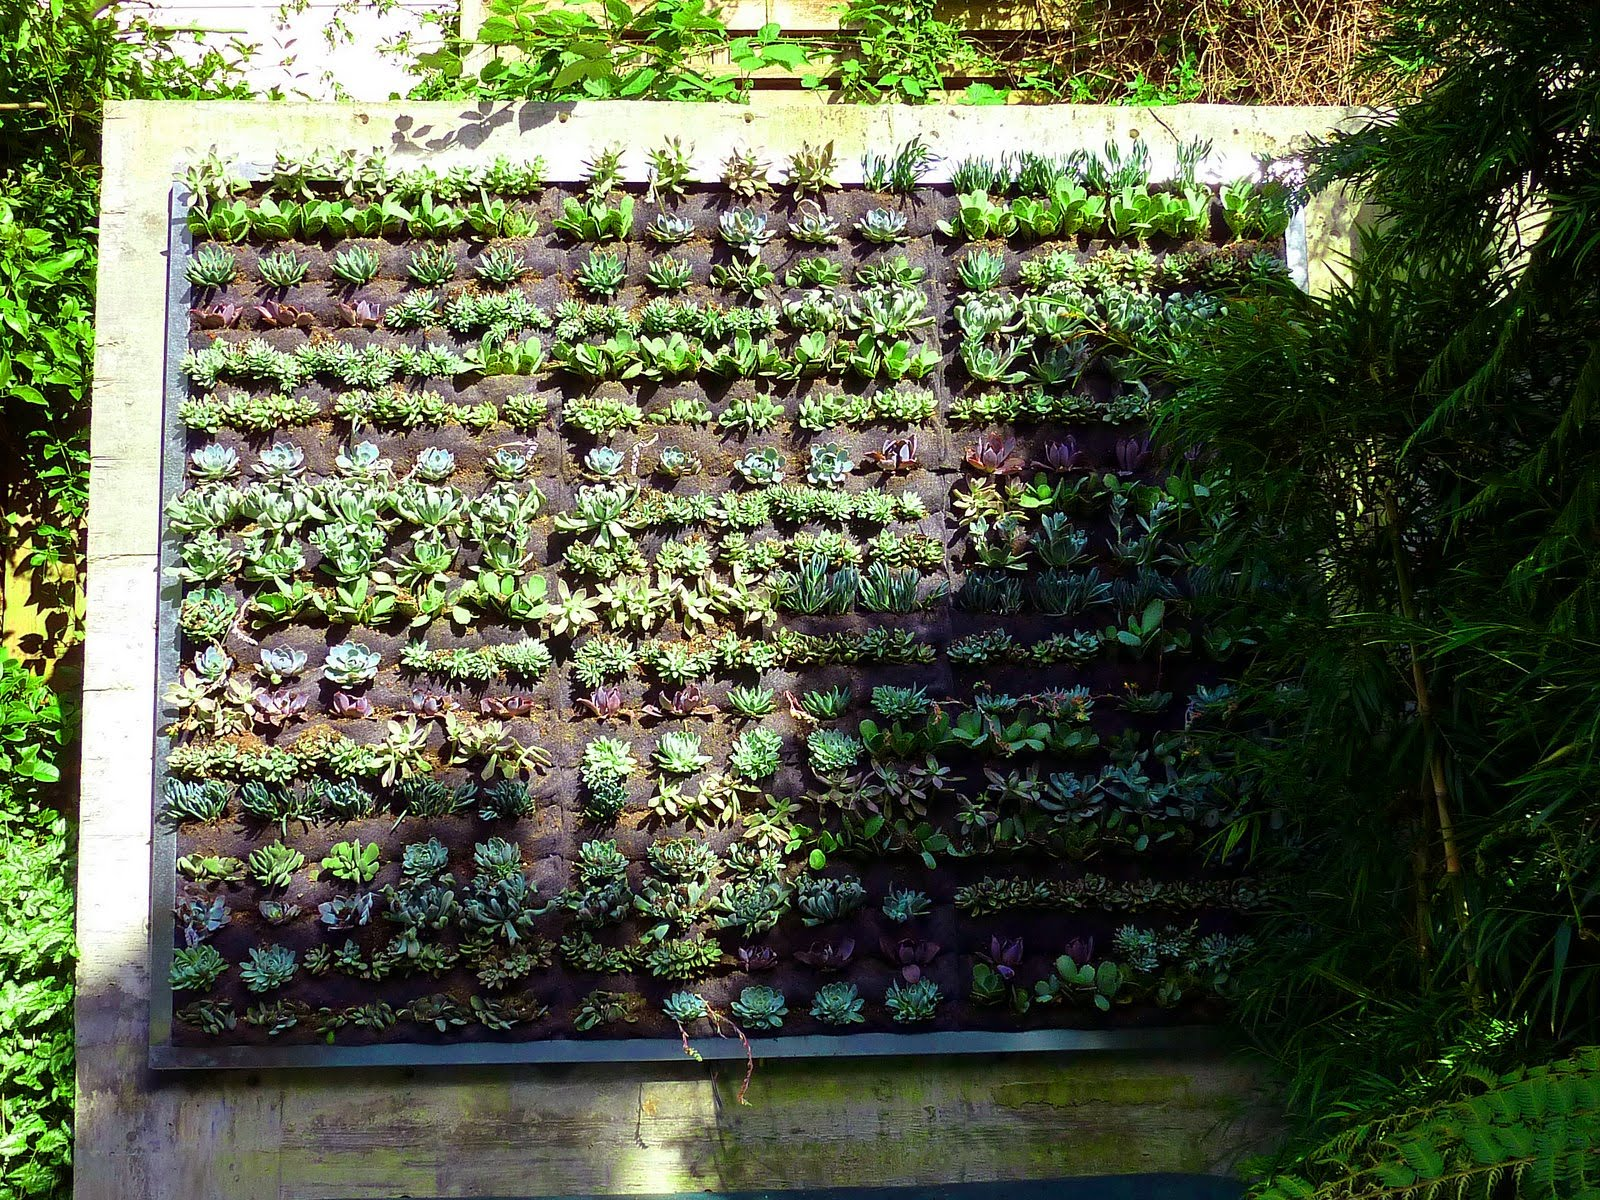 plants on walls vertical garden systems june 2010 On wall garden system